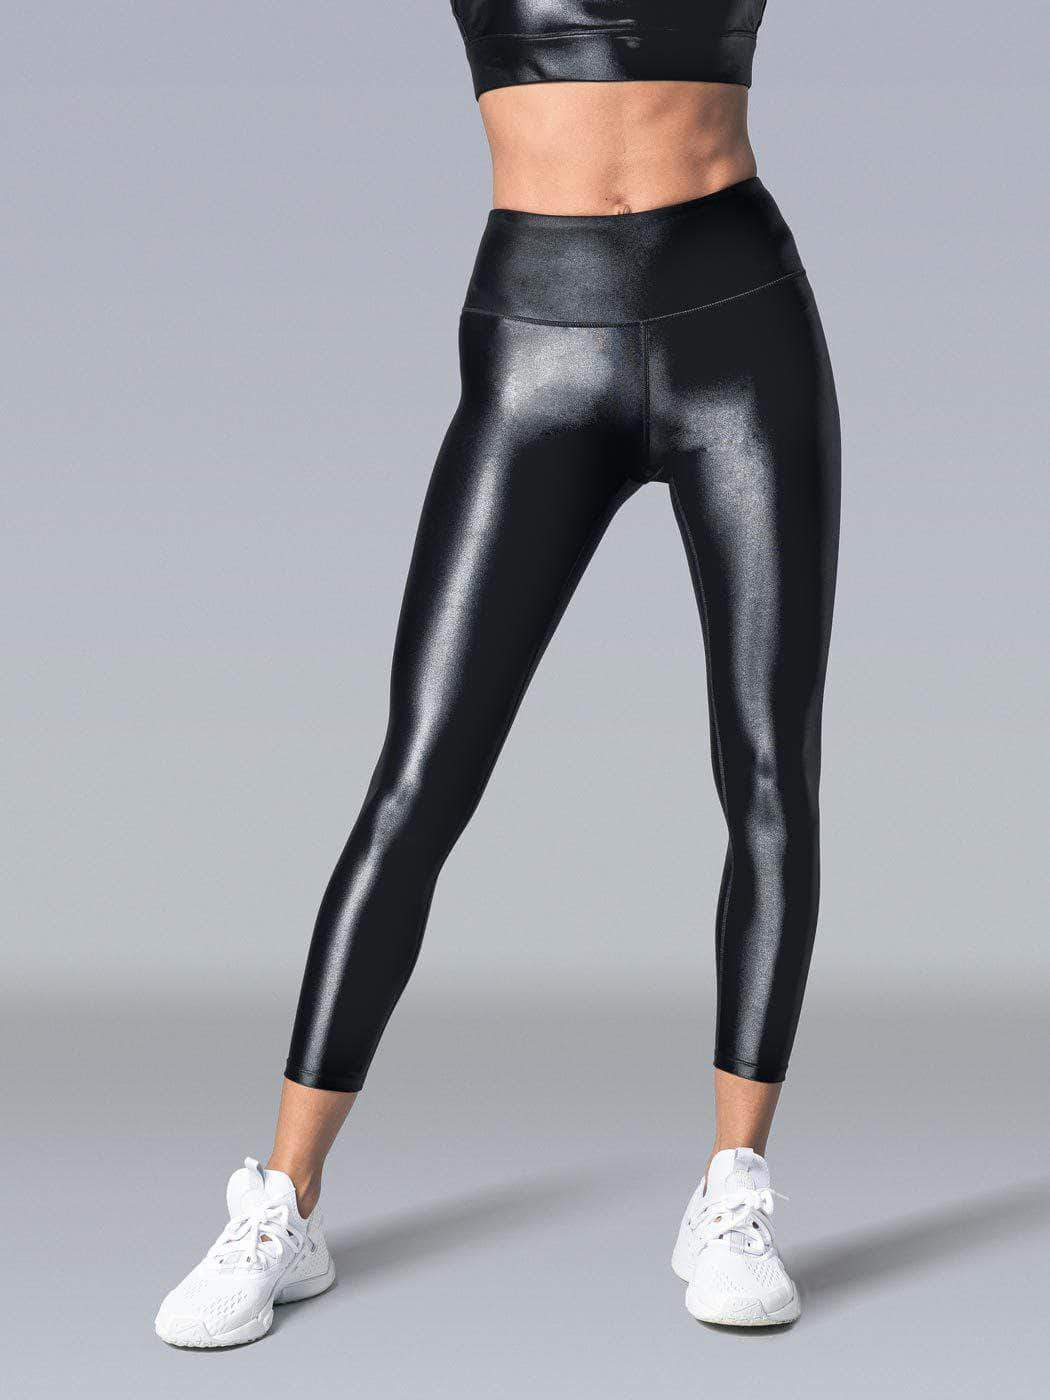 Premier Luminous Legging